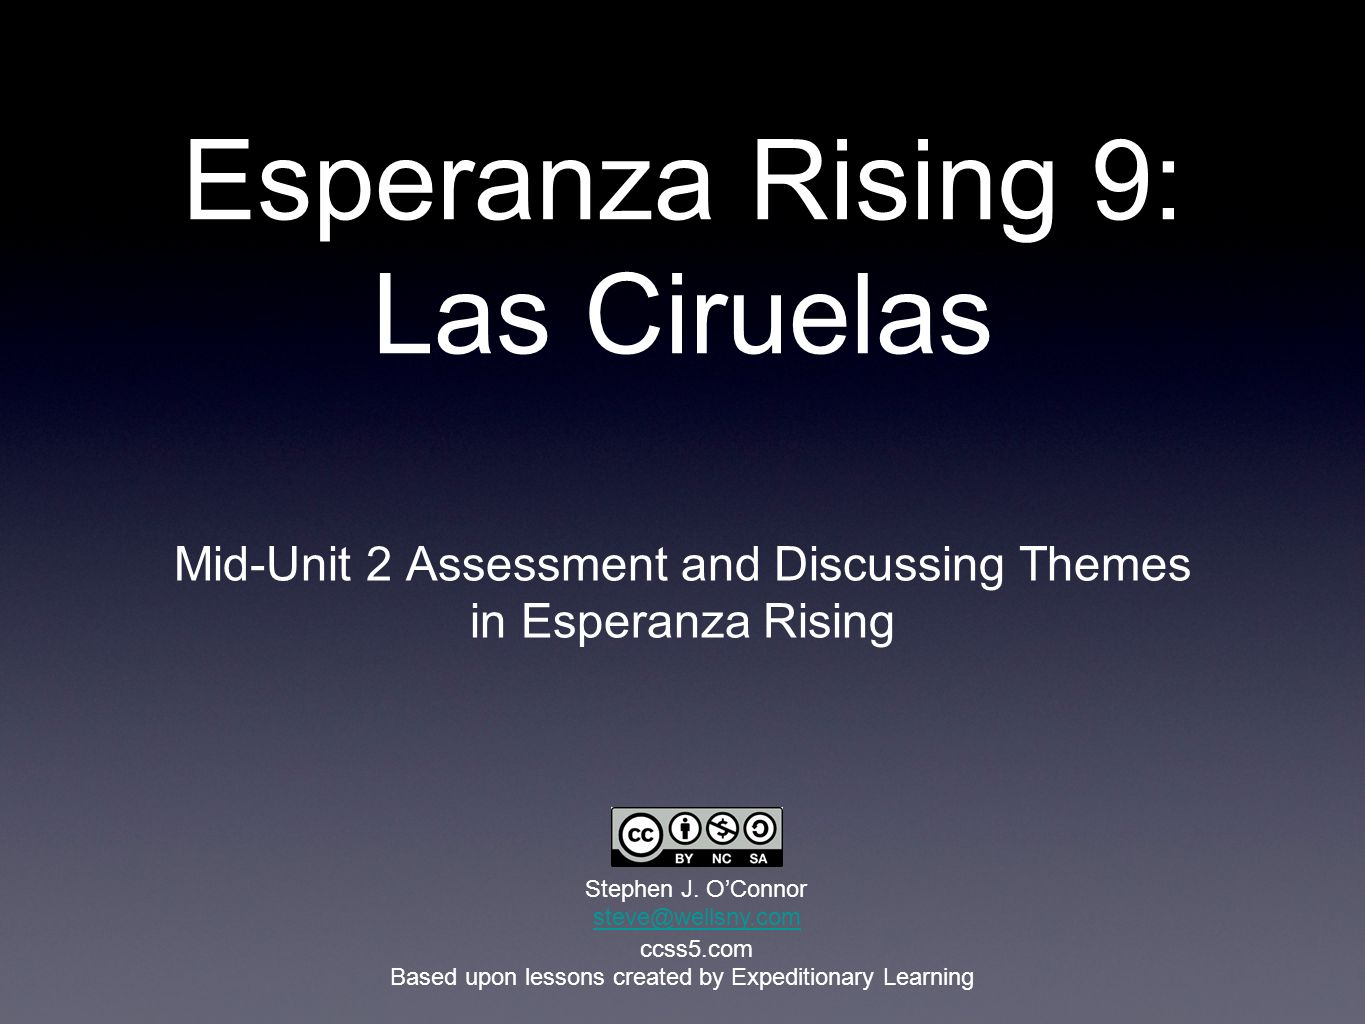 Esperanza Rising 9: Las Ciruelas Mid-Unit 2 Assessment and Discussing Themes in Esperanza Rising Based upon lessons created by Expeditionary Learning